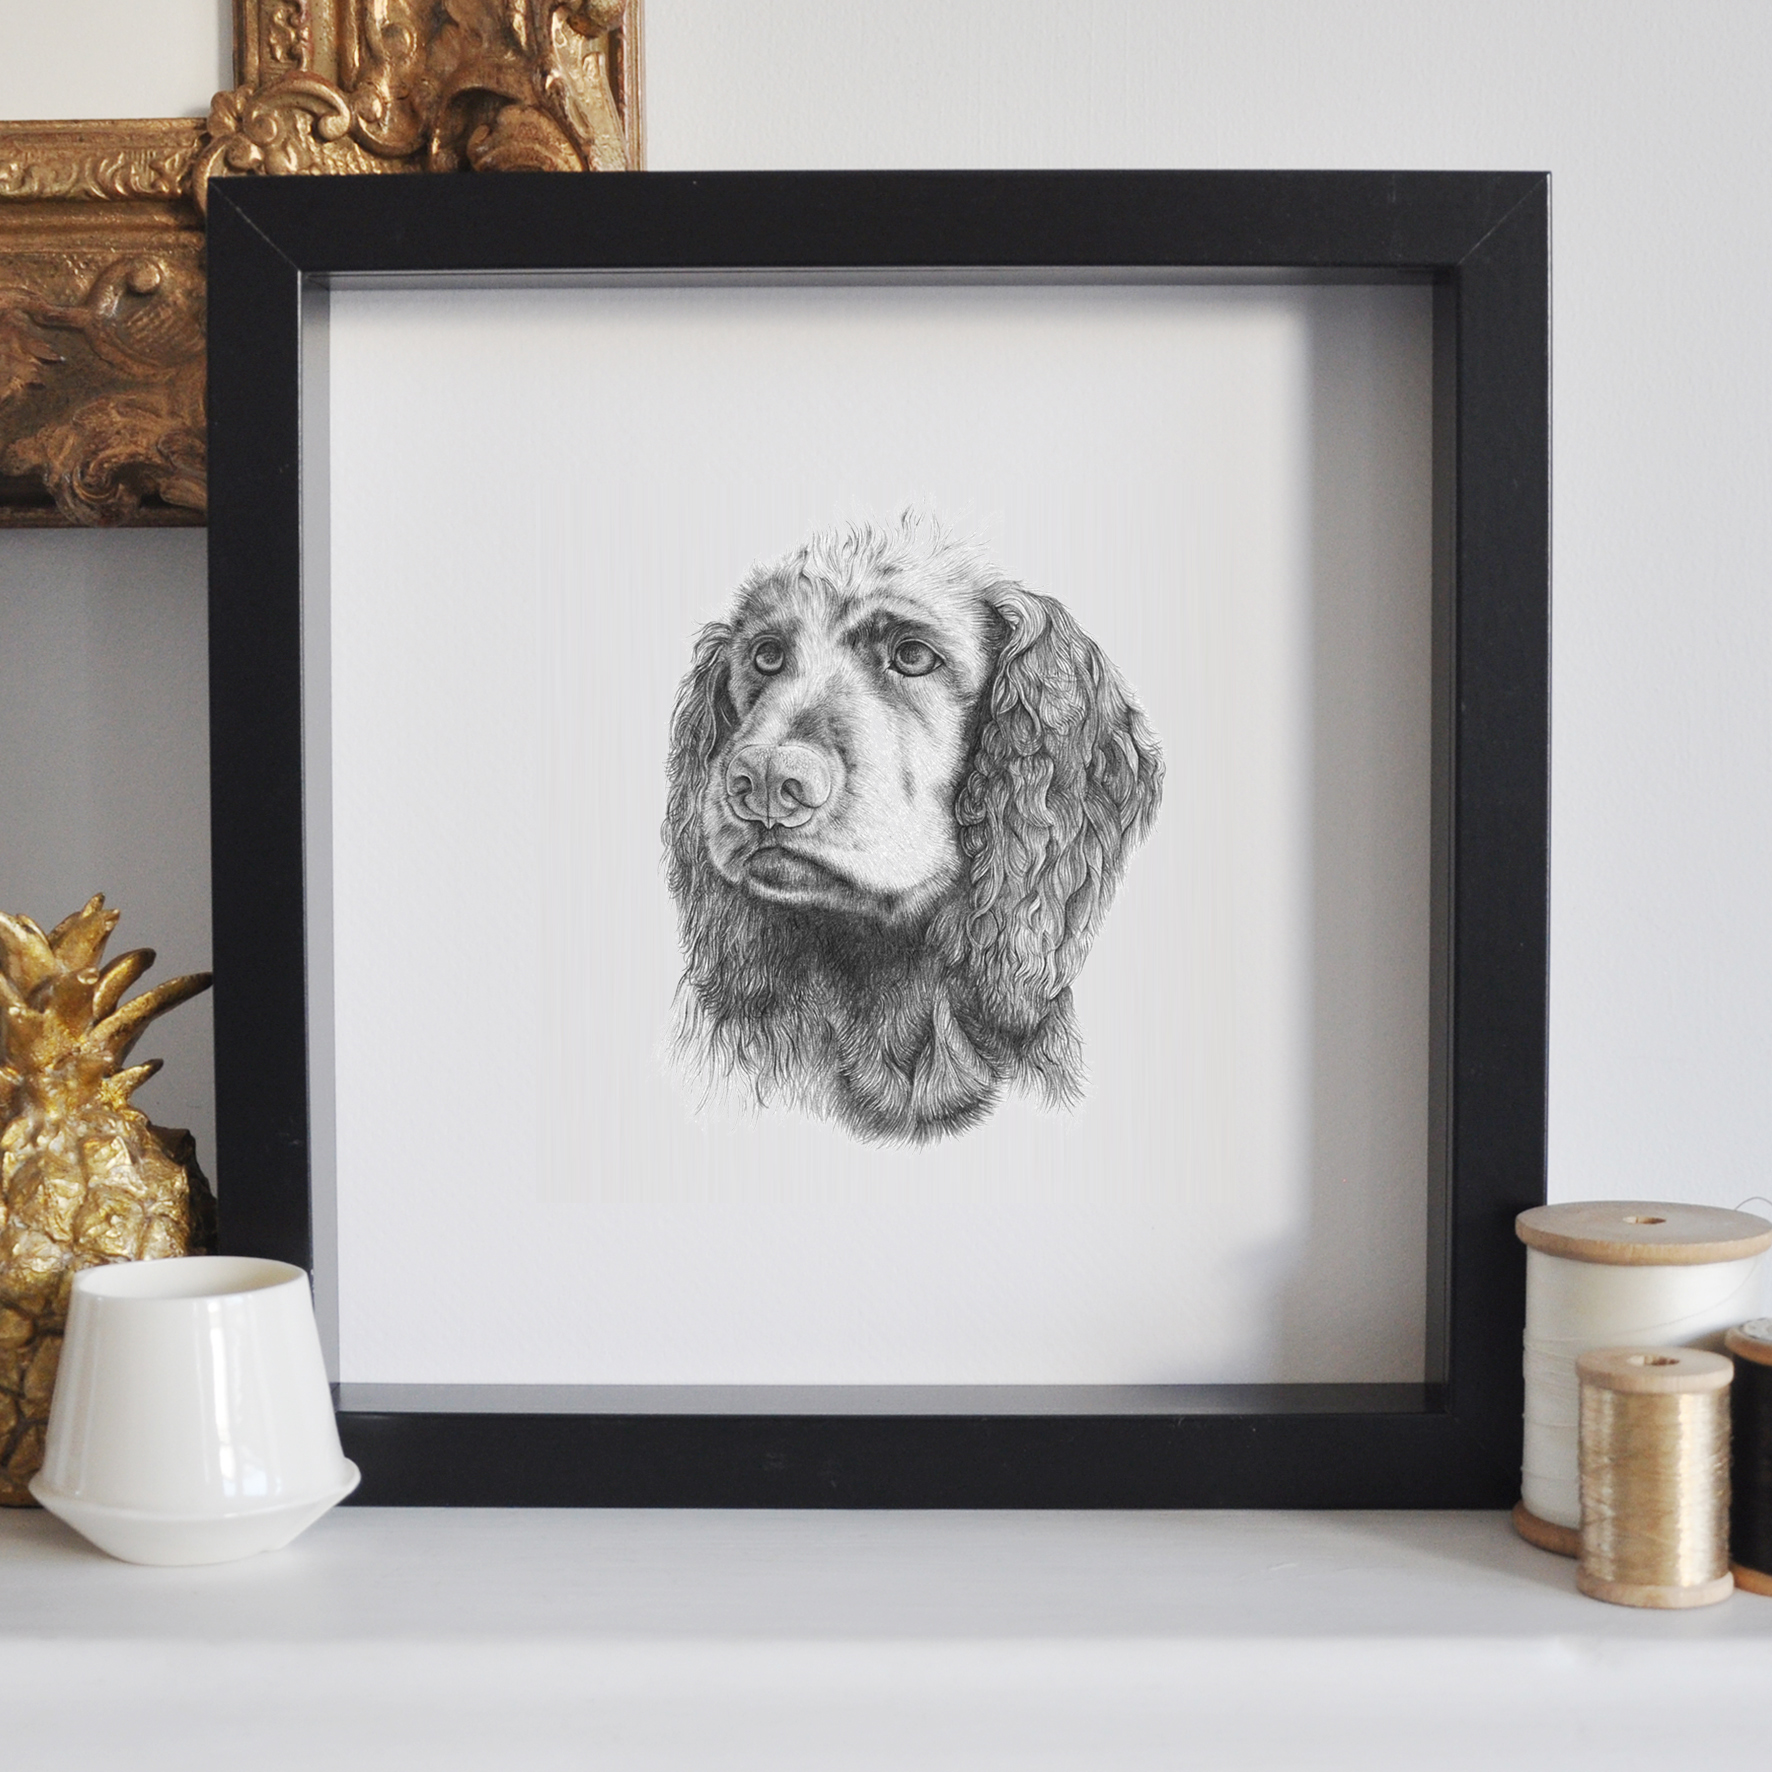 Bingley - The cocker spaniel. 10x10cm